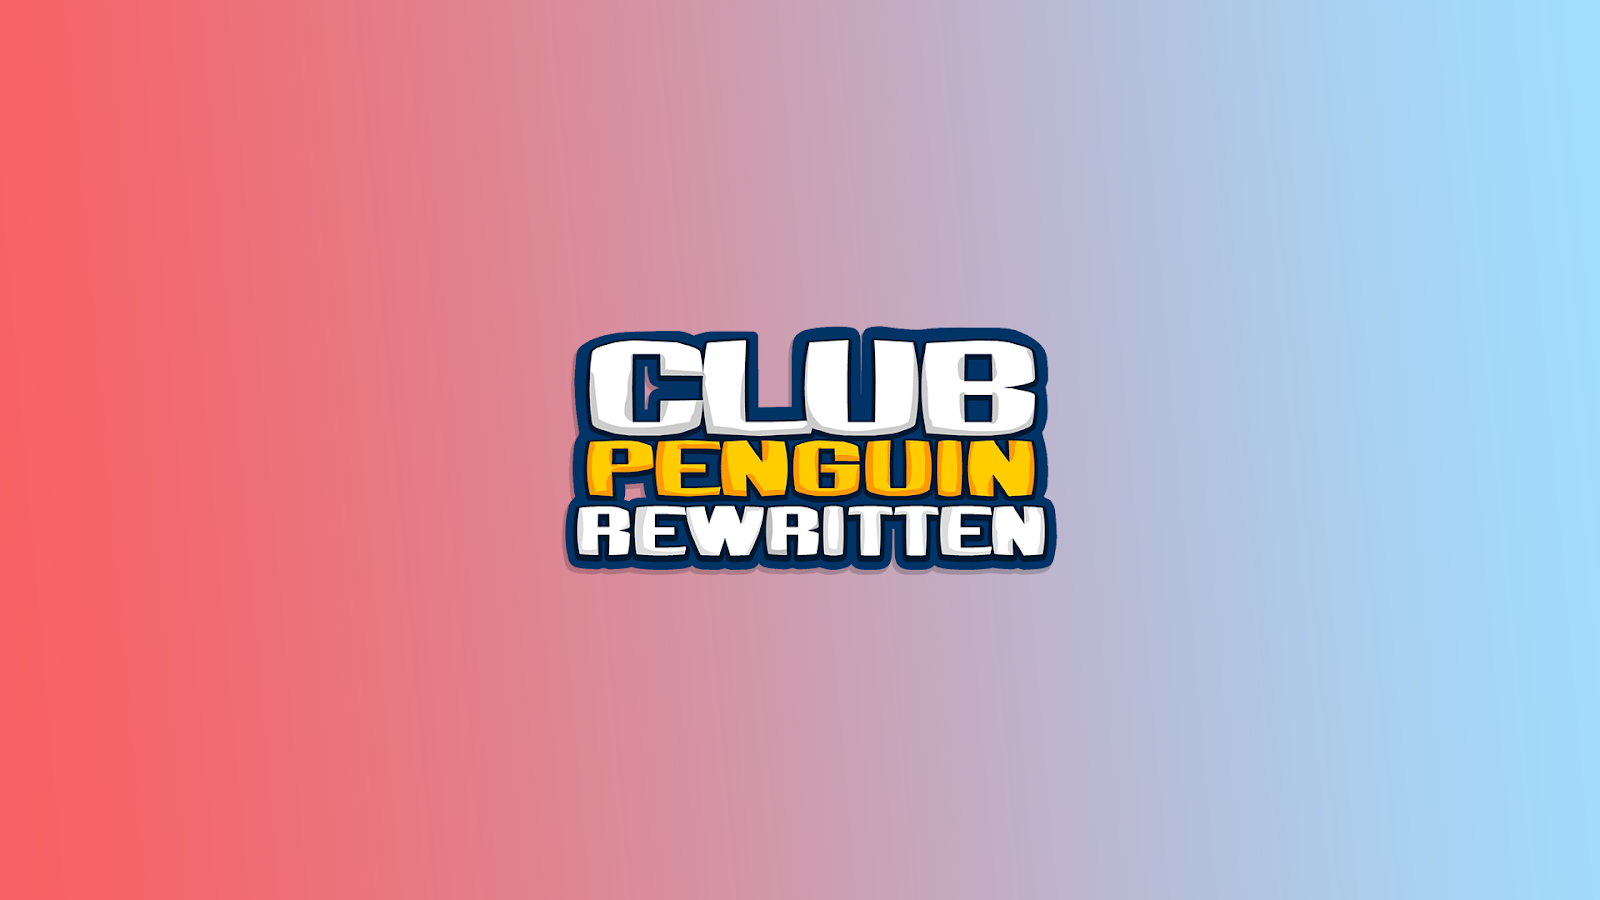 New Penguin Games Wallpapers   August 2018 Club Penguin 1600x900